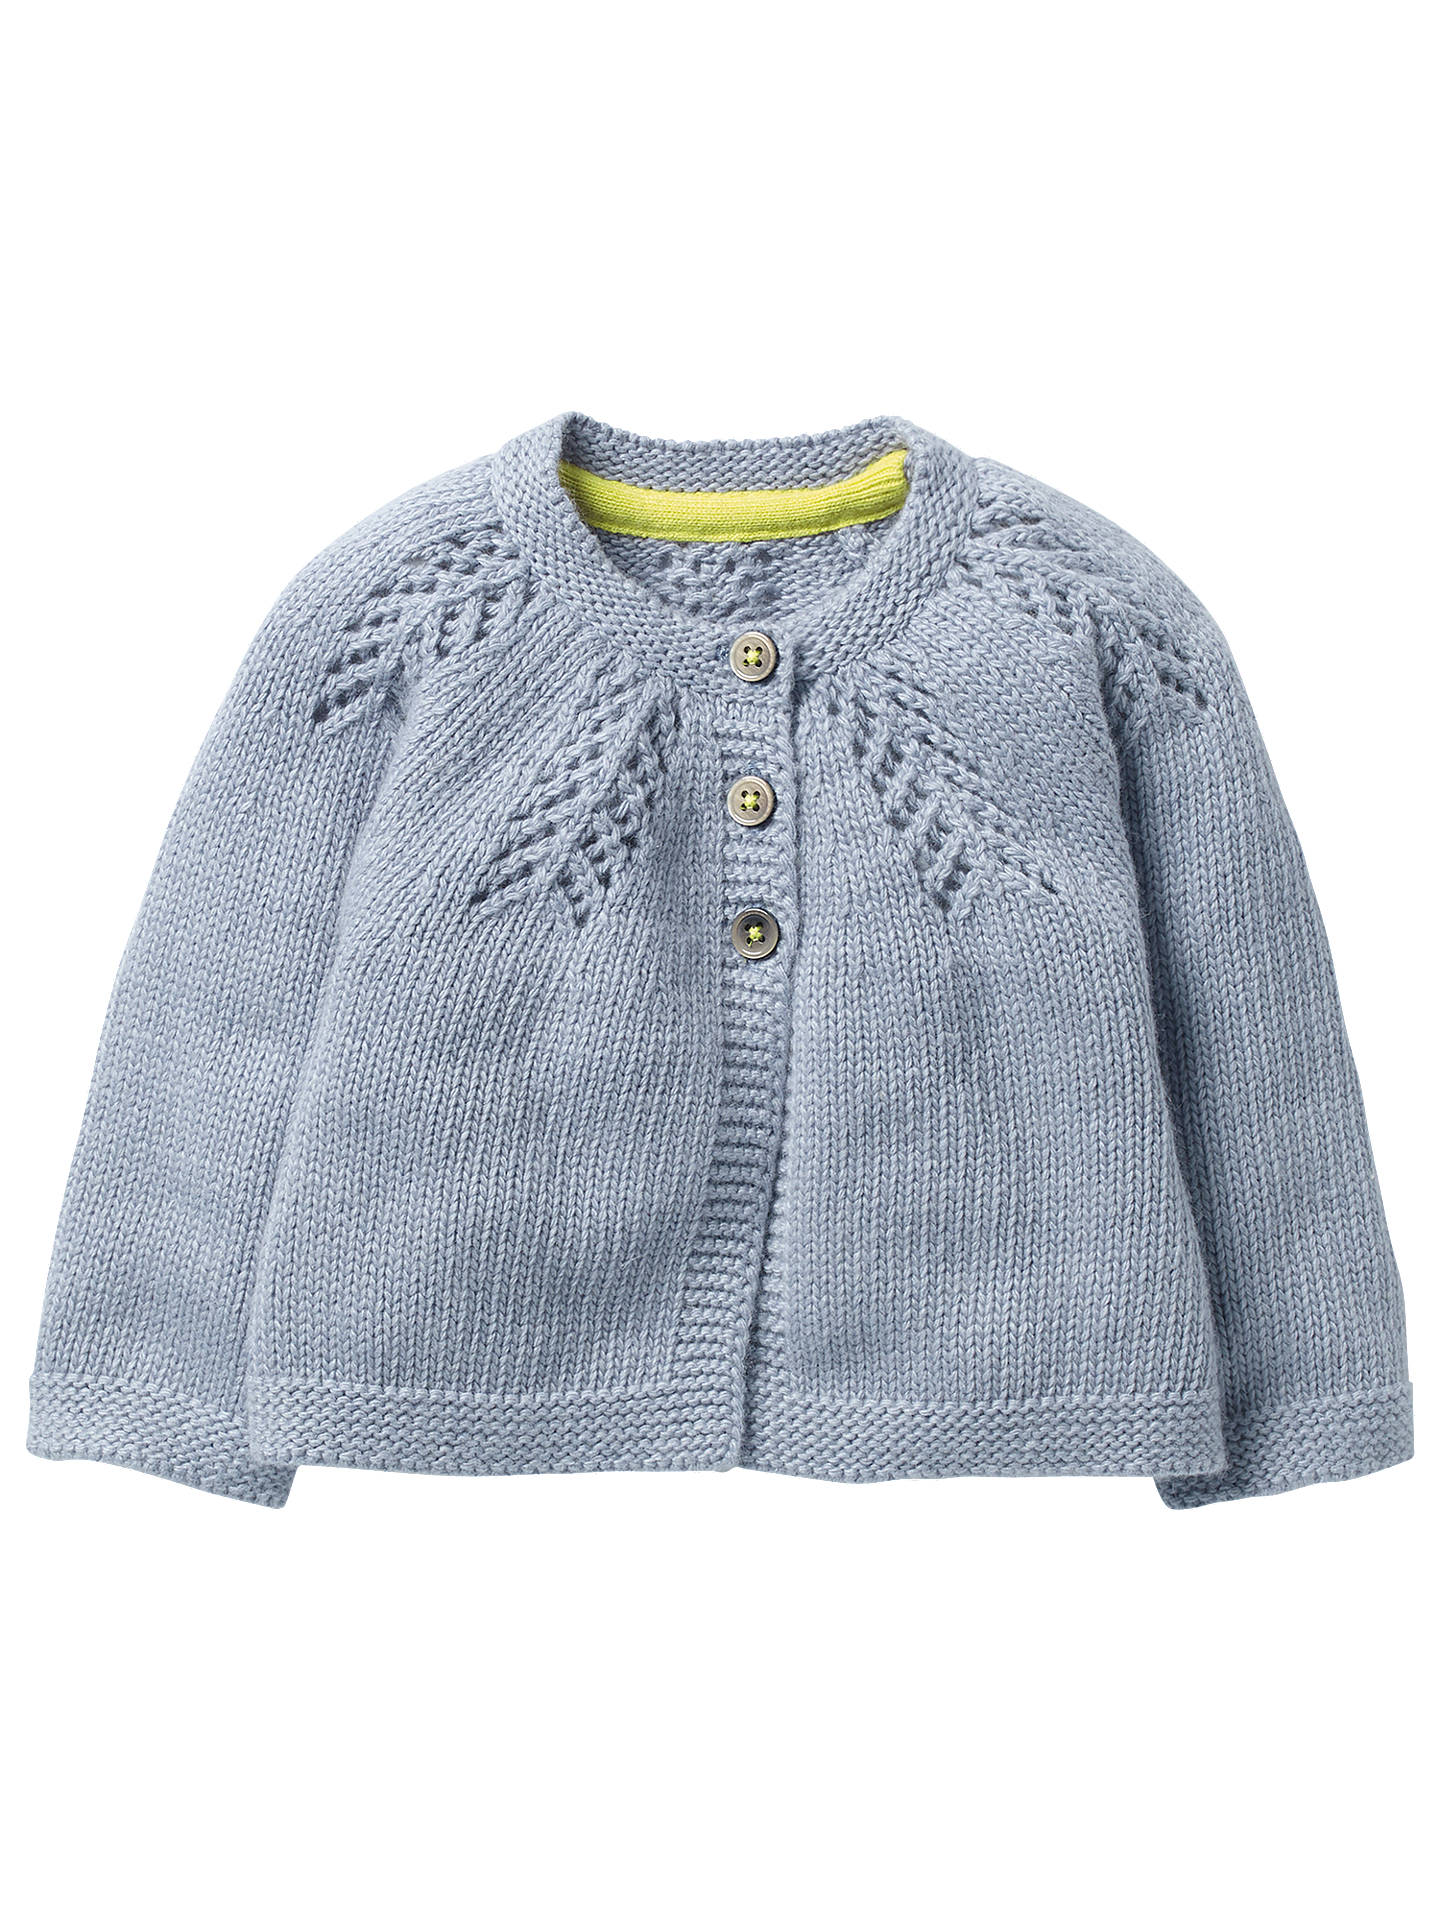 d499c5a7a057 Mini Boden Baby Cosy Cardigan at John Lewis   Partners